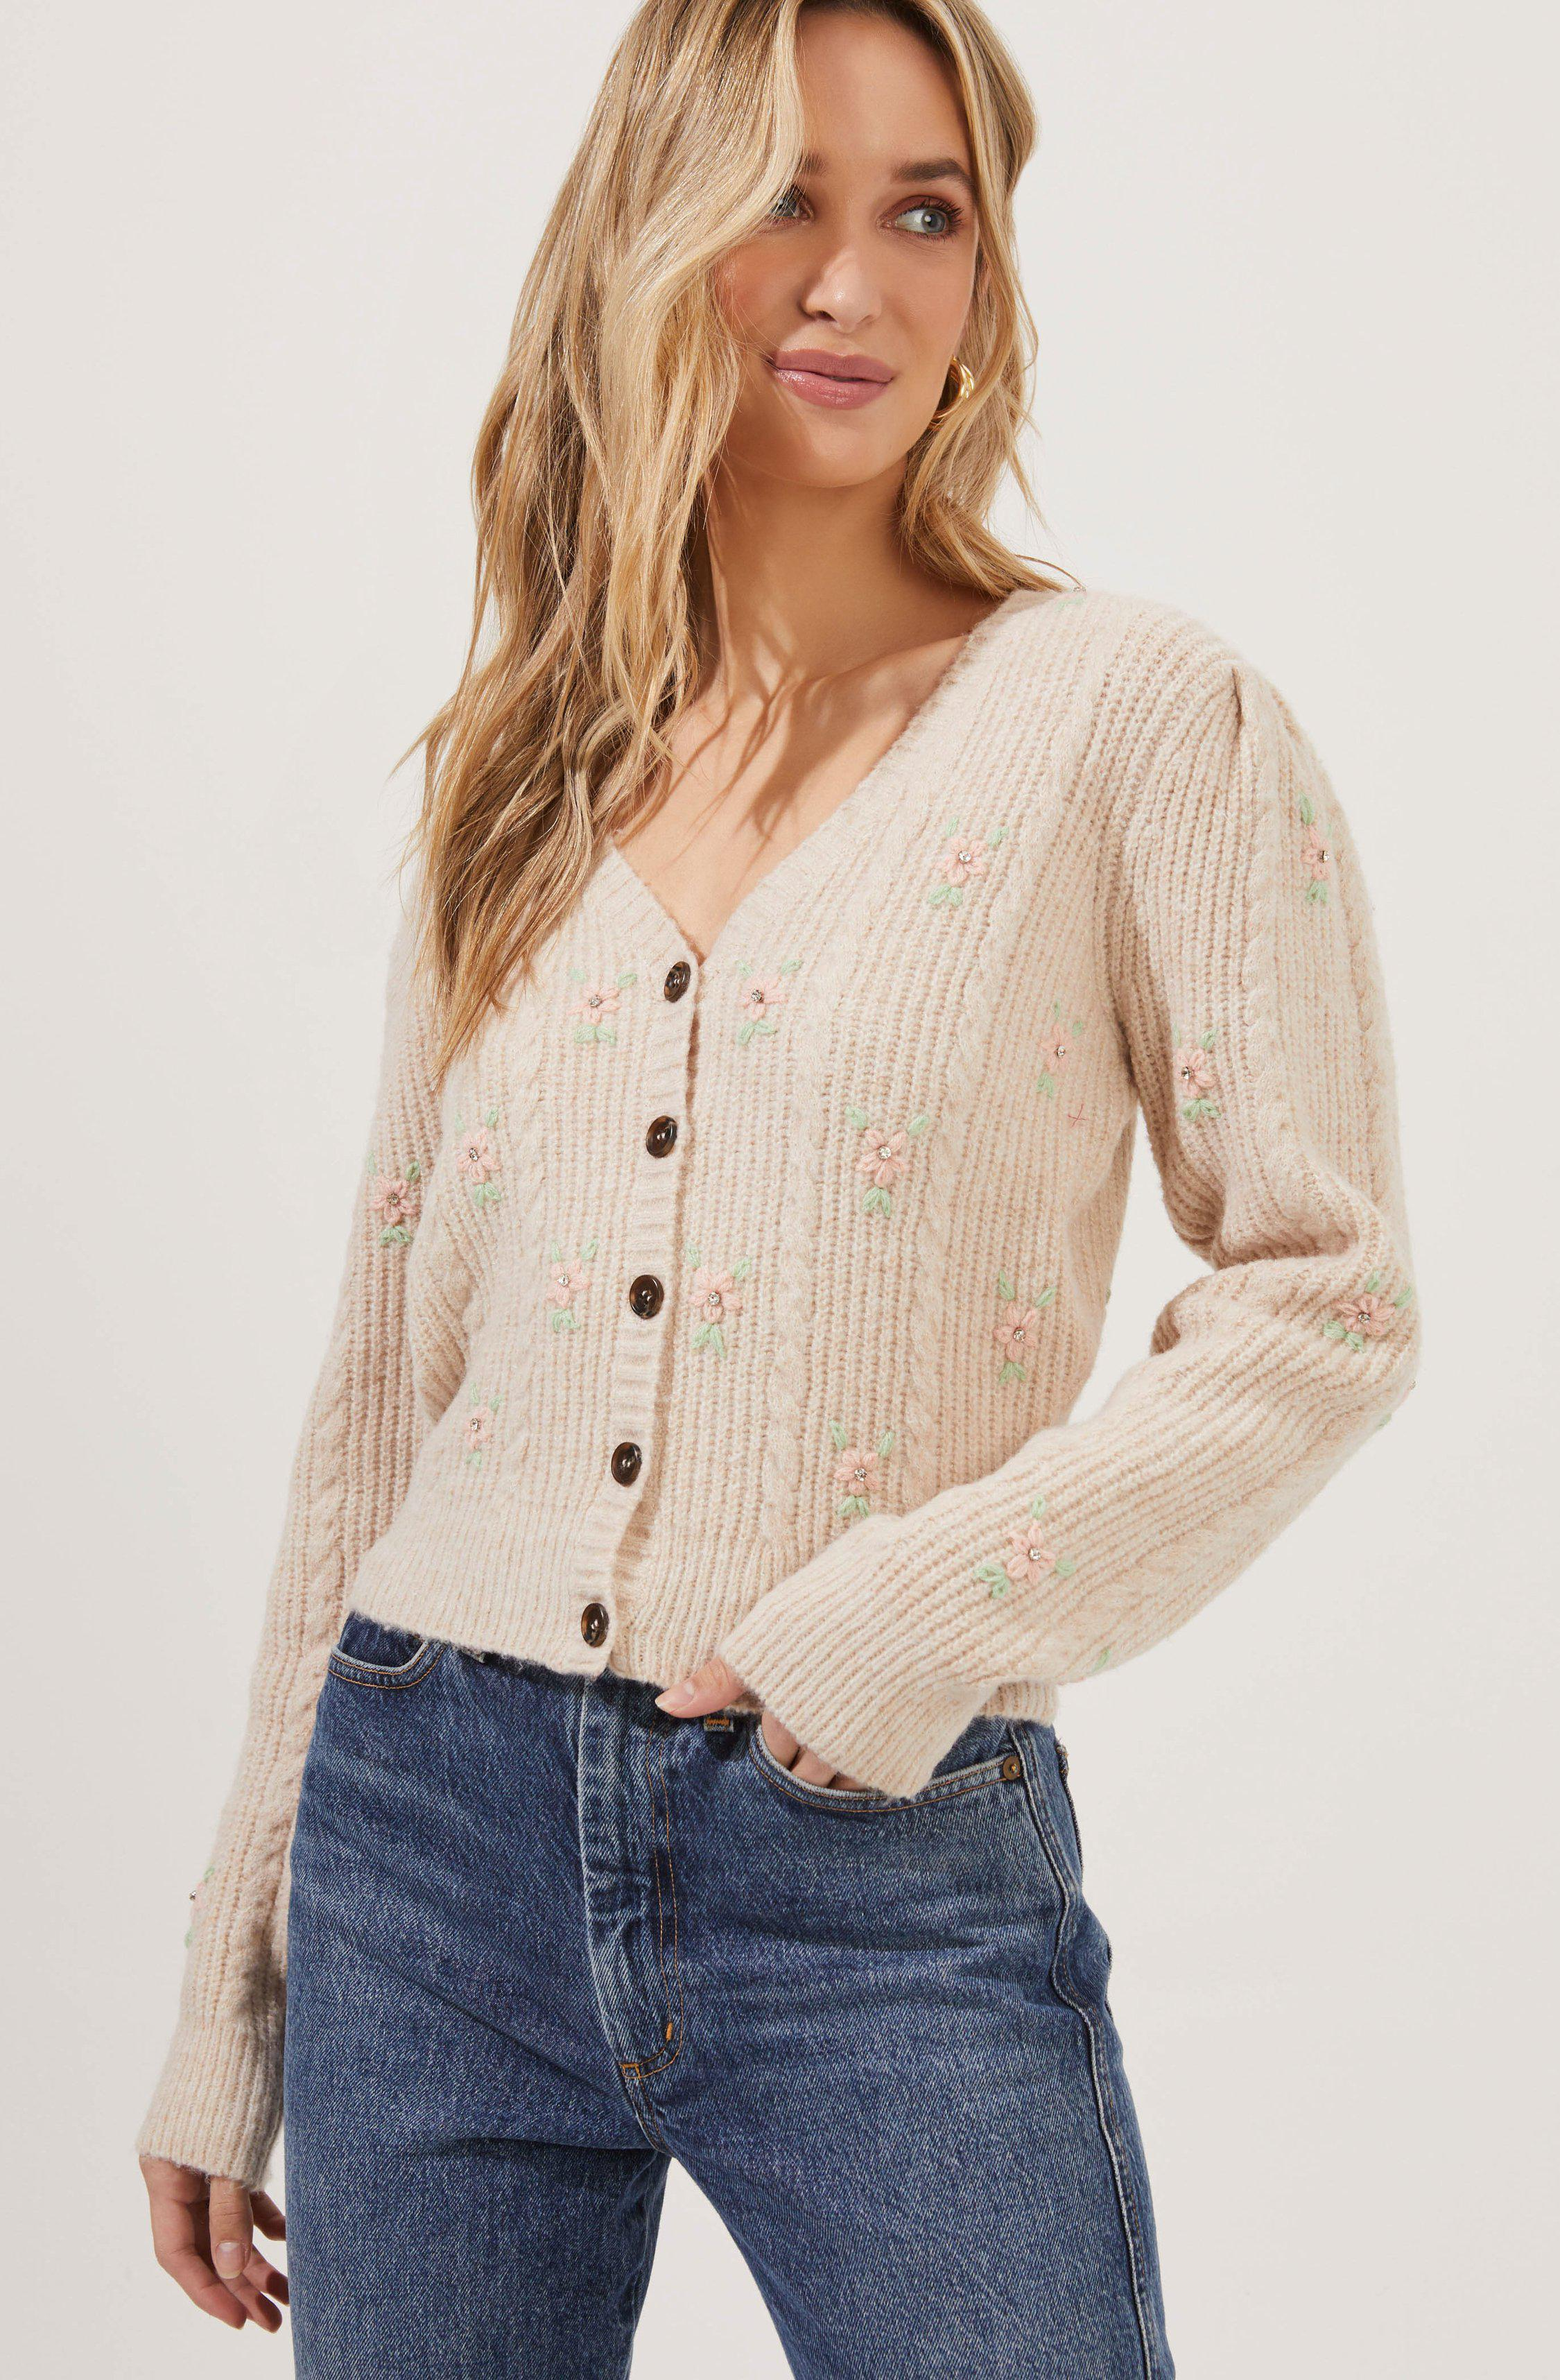 Tea Party Embroidered Flower Cardigan